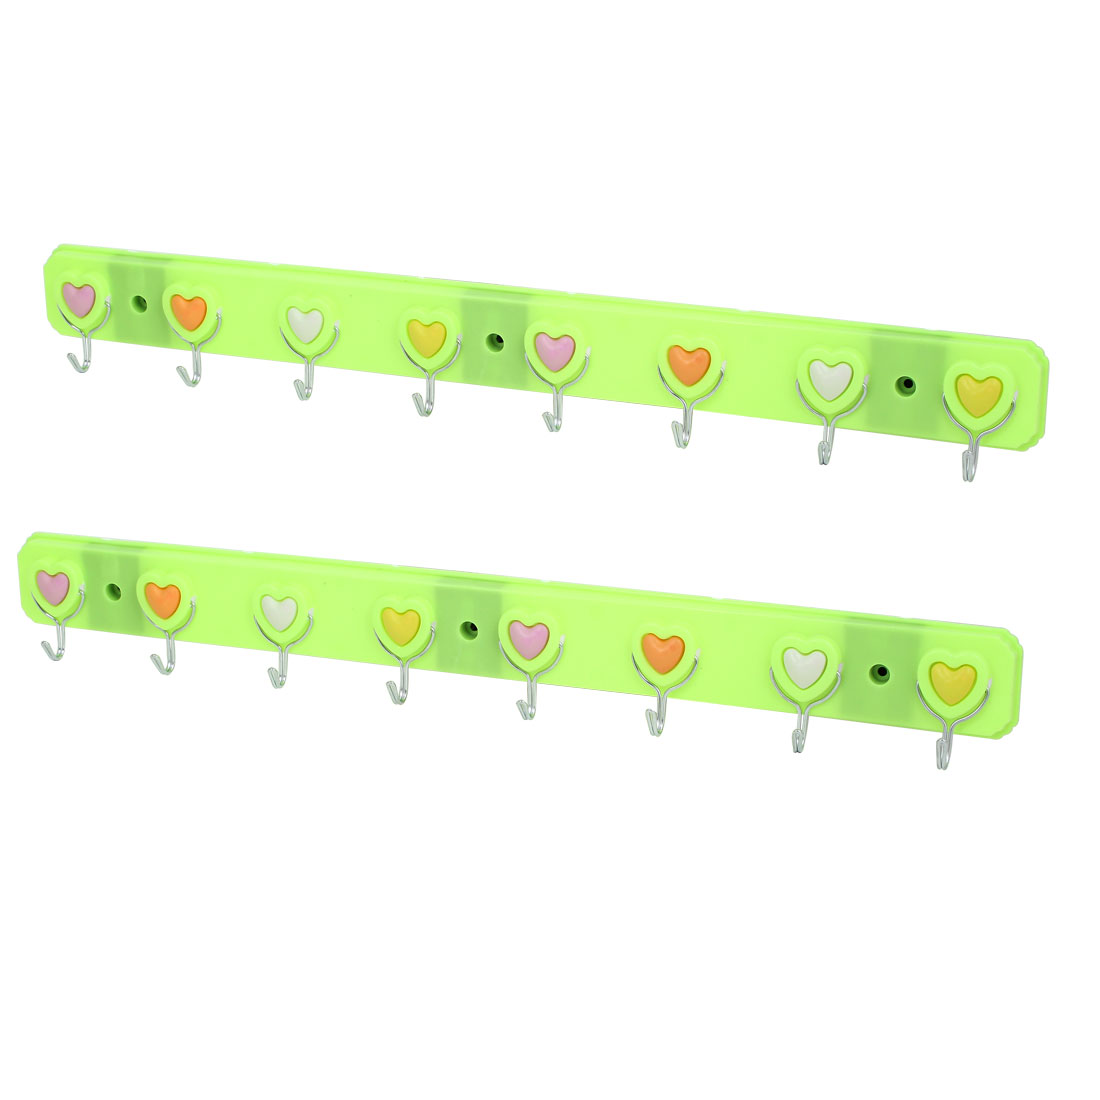 Bedroom Bathroom Hat Clothes Towel Heart Pattern Wall Mounted Self Adhesive 8-Hooks Plastic Hanger Rack Holder Green 2Pcs